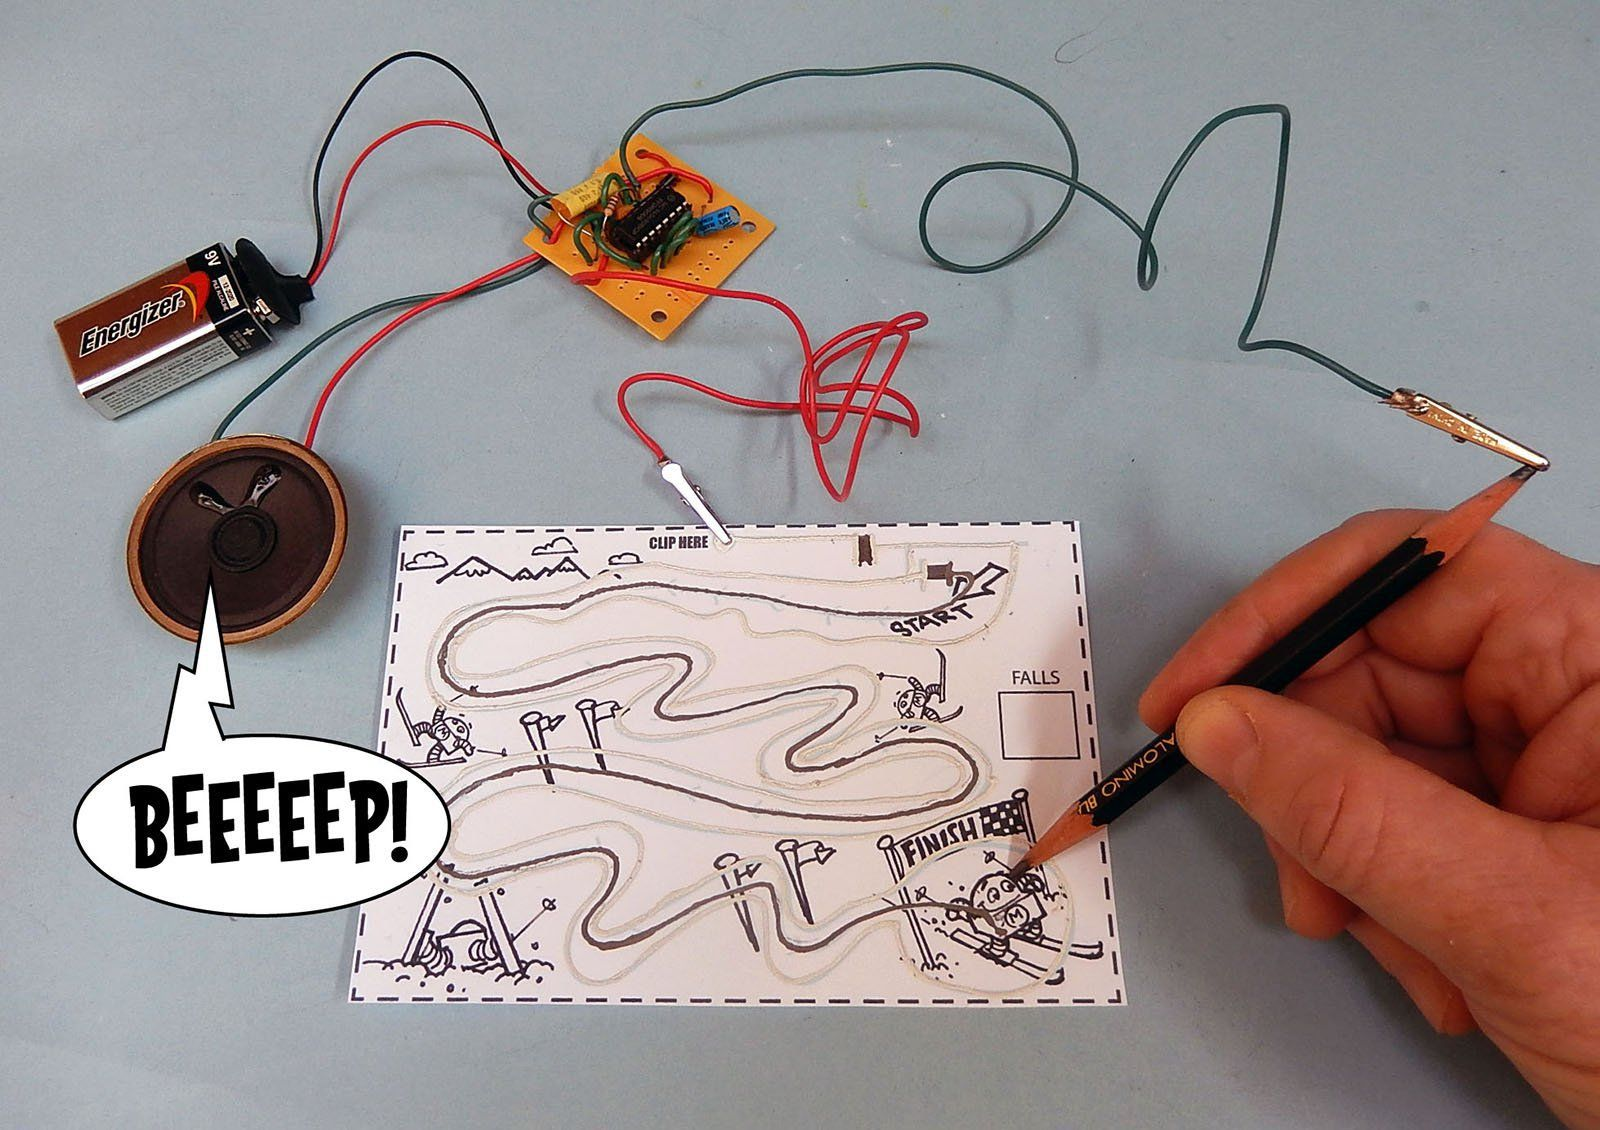 Build An Electronic Audio Game With A Pencil Paper And Conductive Simple Electrical Circuit For Kids Jay Silvers 2008 Drawdio Combines 555 Timer To Make Squeals Beeps Other Musical Tones